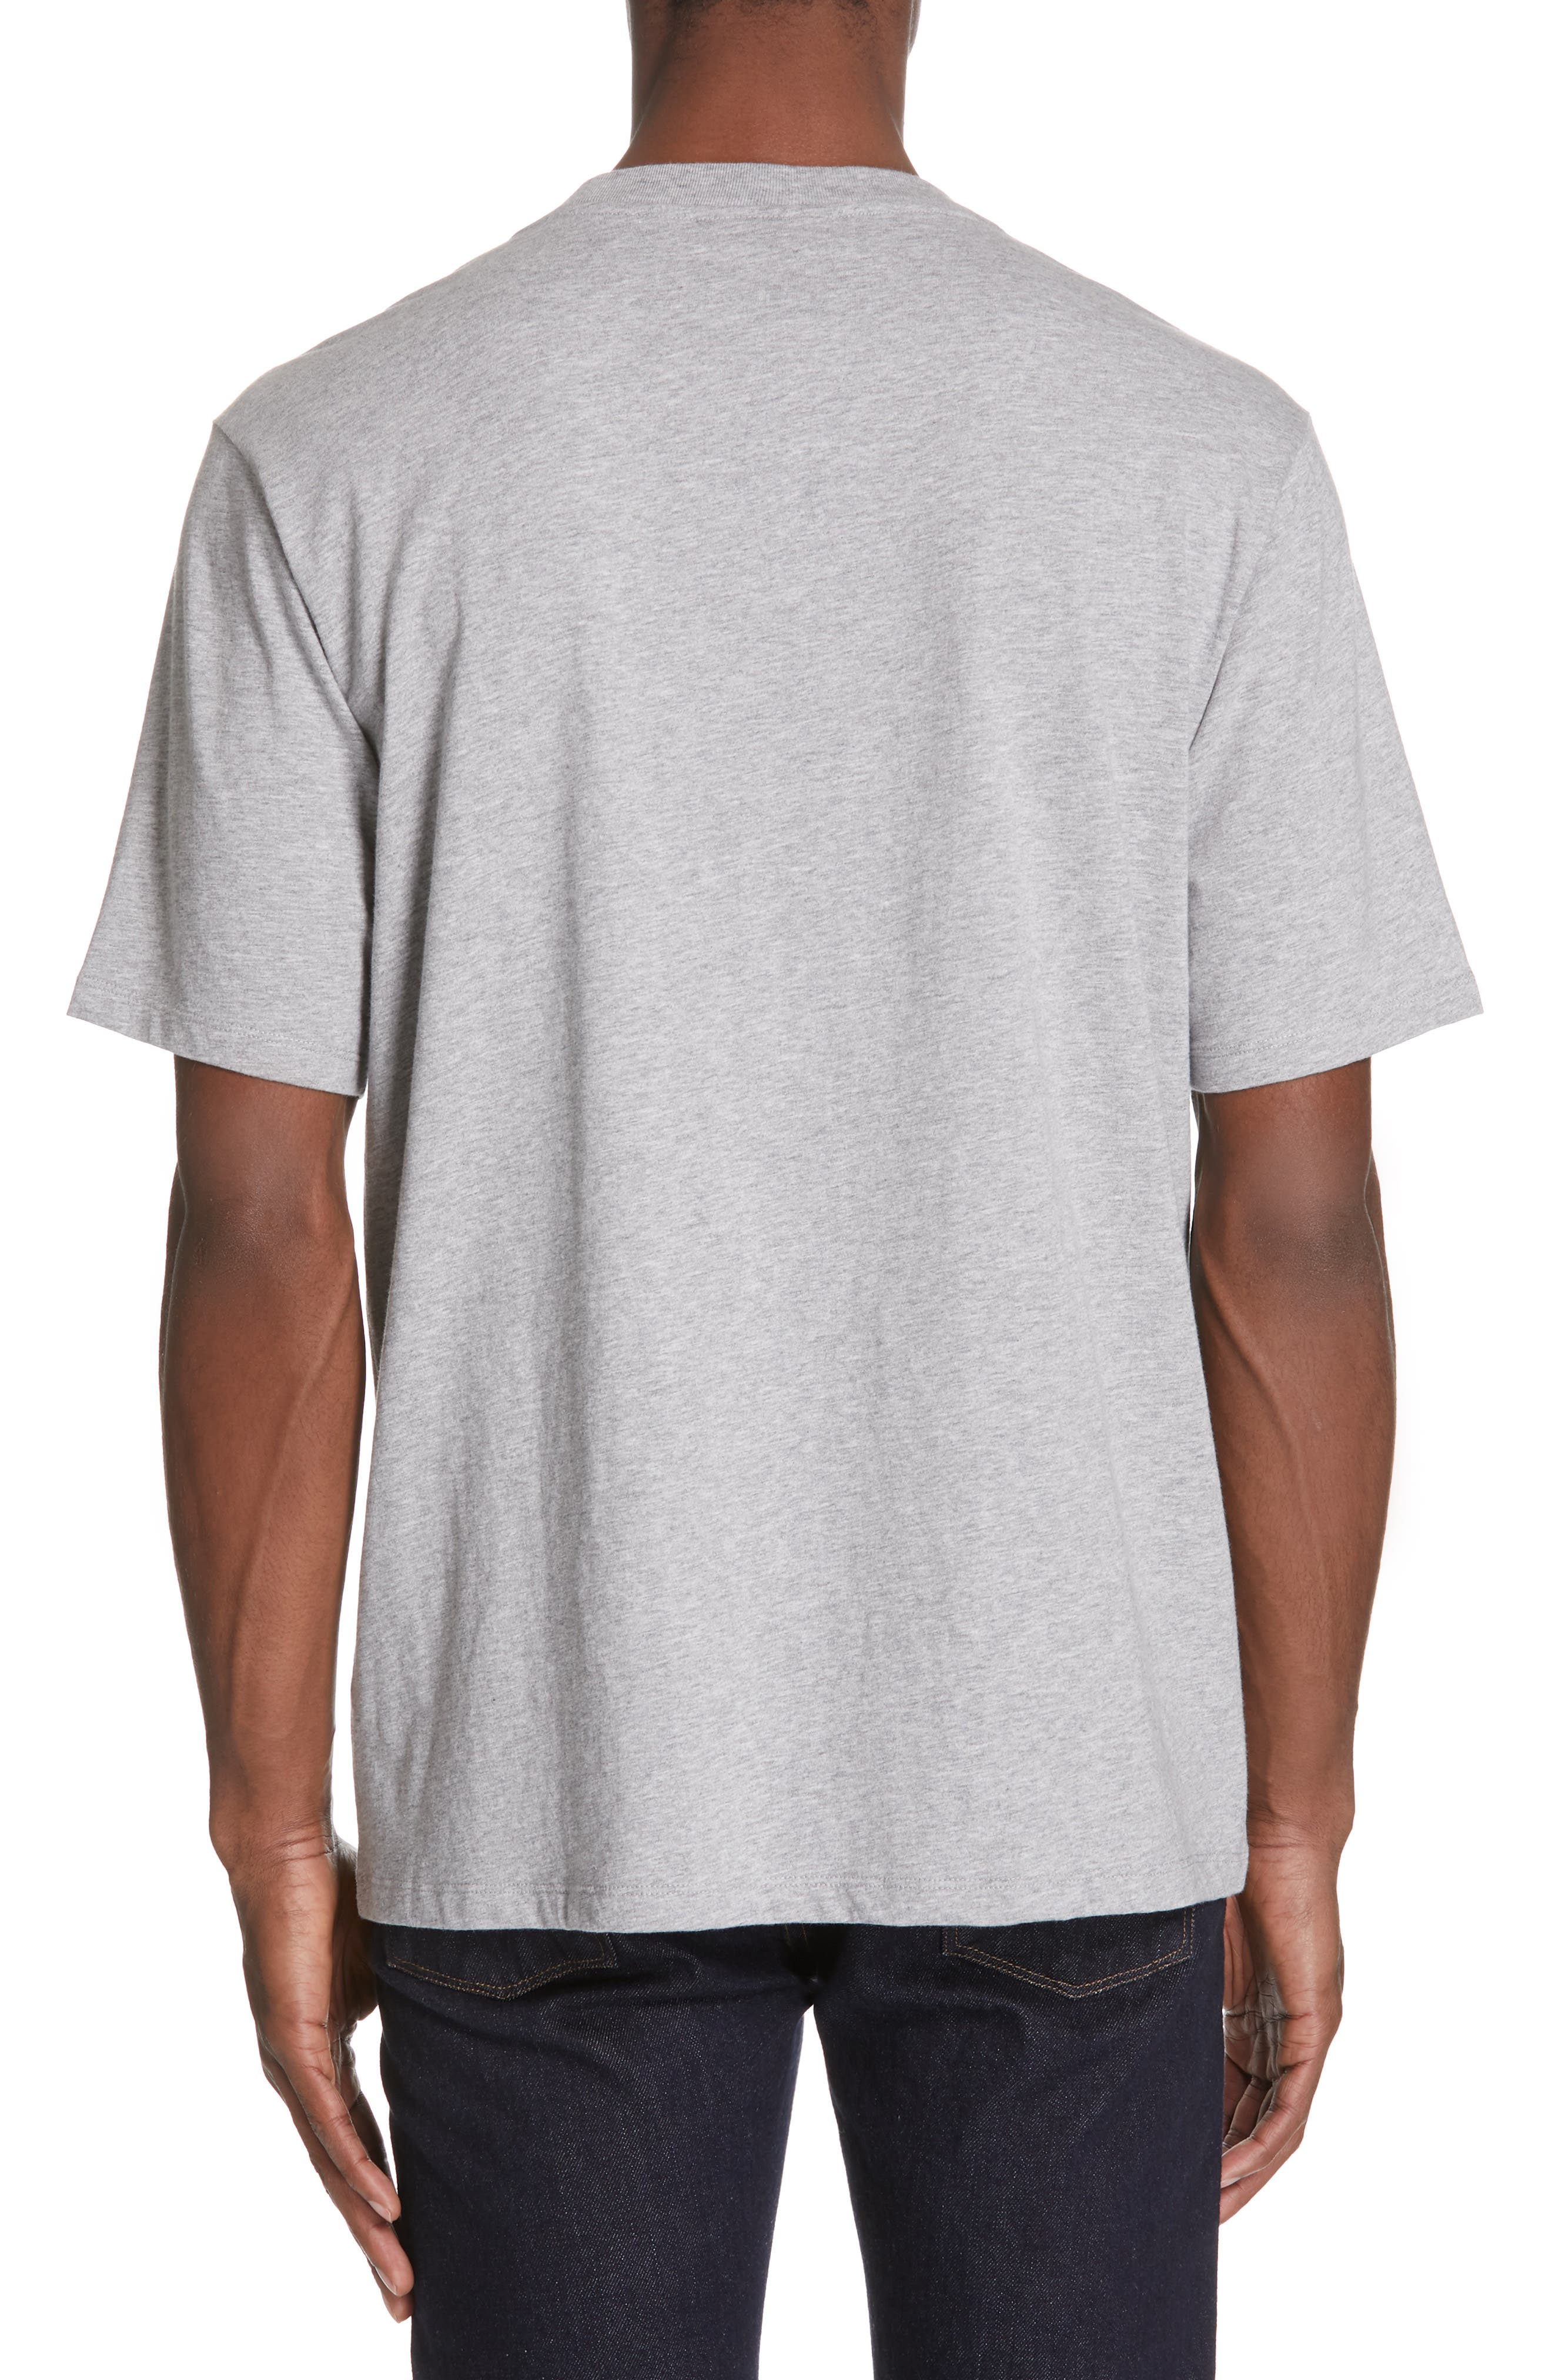 Lopori Logo T-Shirt,                             Alternate thumbnail 2, color,                             PALE GREY MELANGE